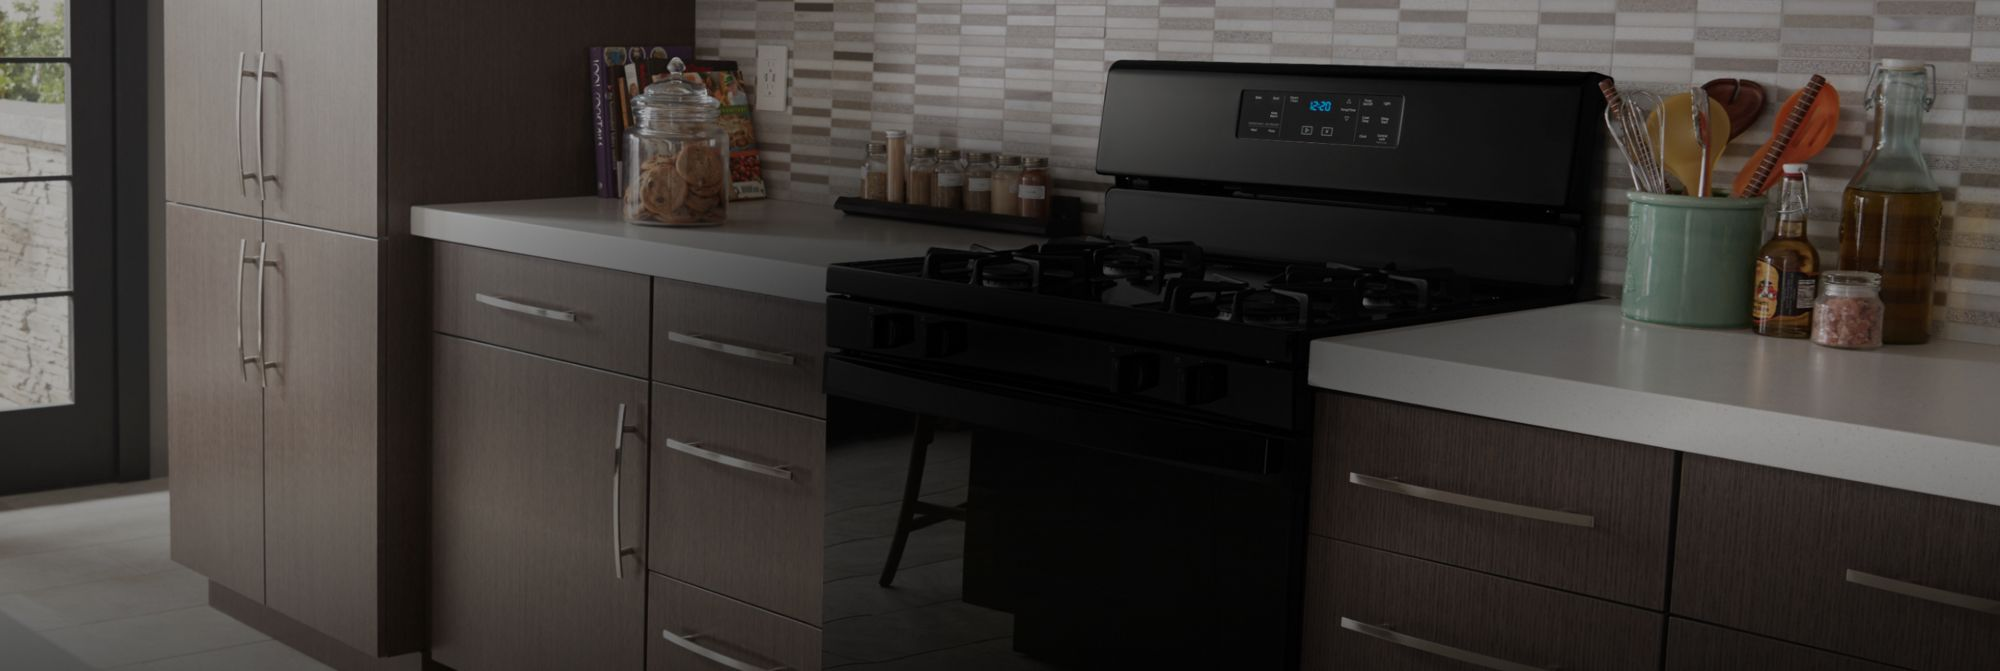 Whirlpool® wall oven and cooktop.